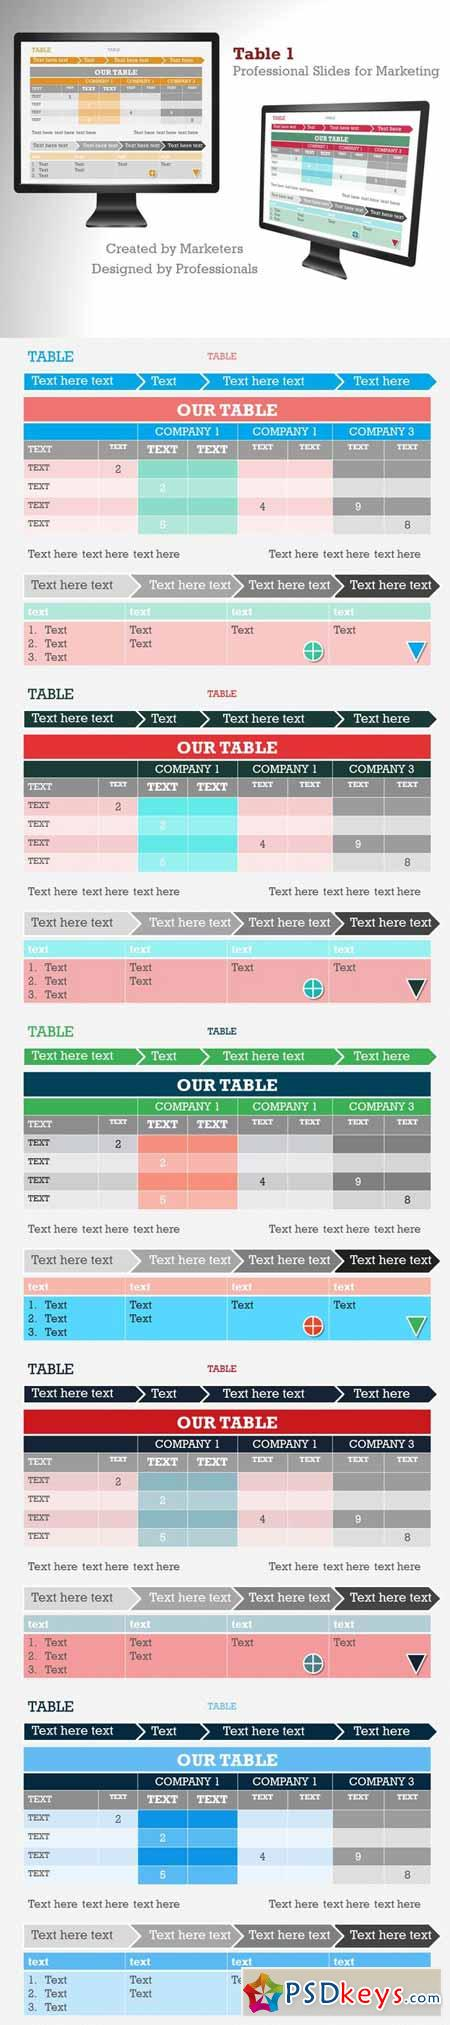 Table 1 PowerPoint Template 372638